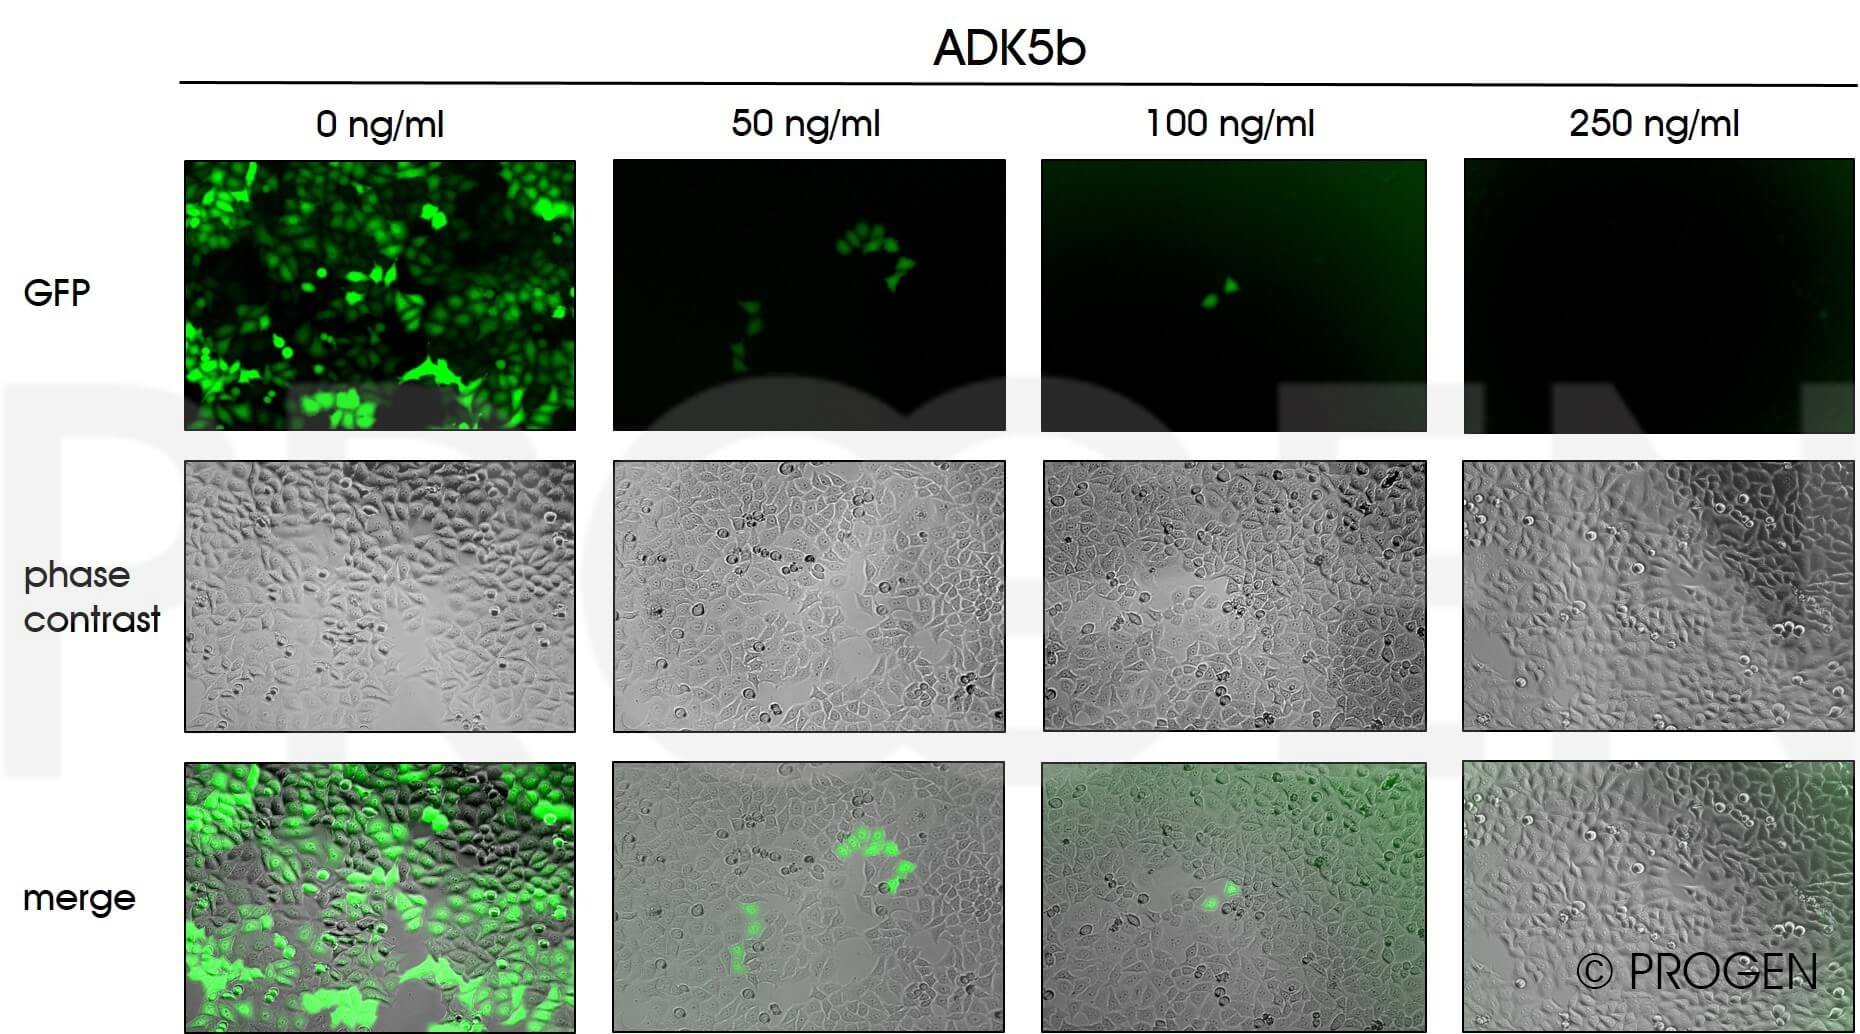 anti-AAV5 (intact particle) mouse monoclonal, ADK5b, lyophilized, purified, sample